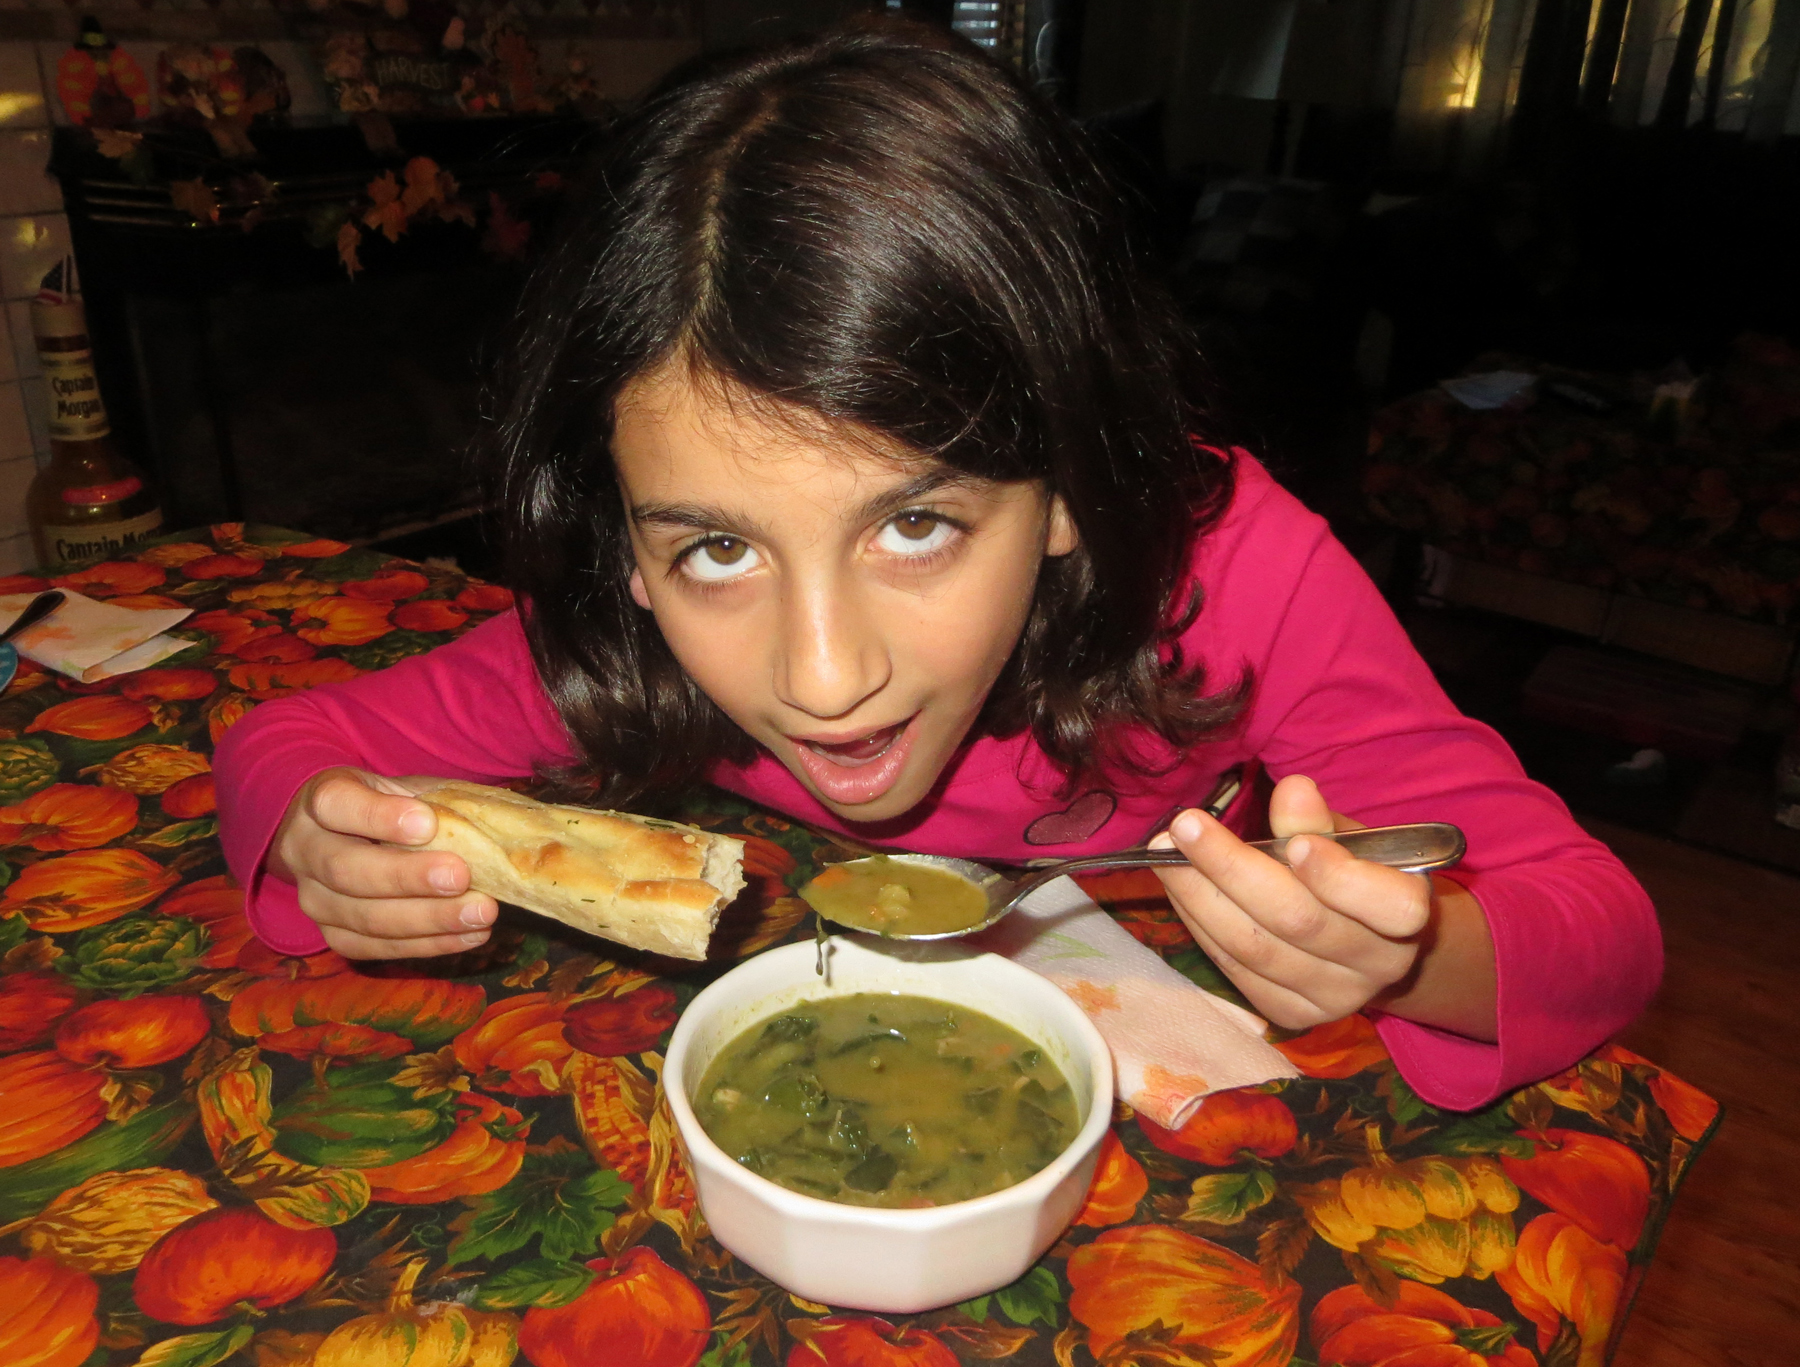 Julianna gave the thumbs-up on the soup!